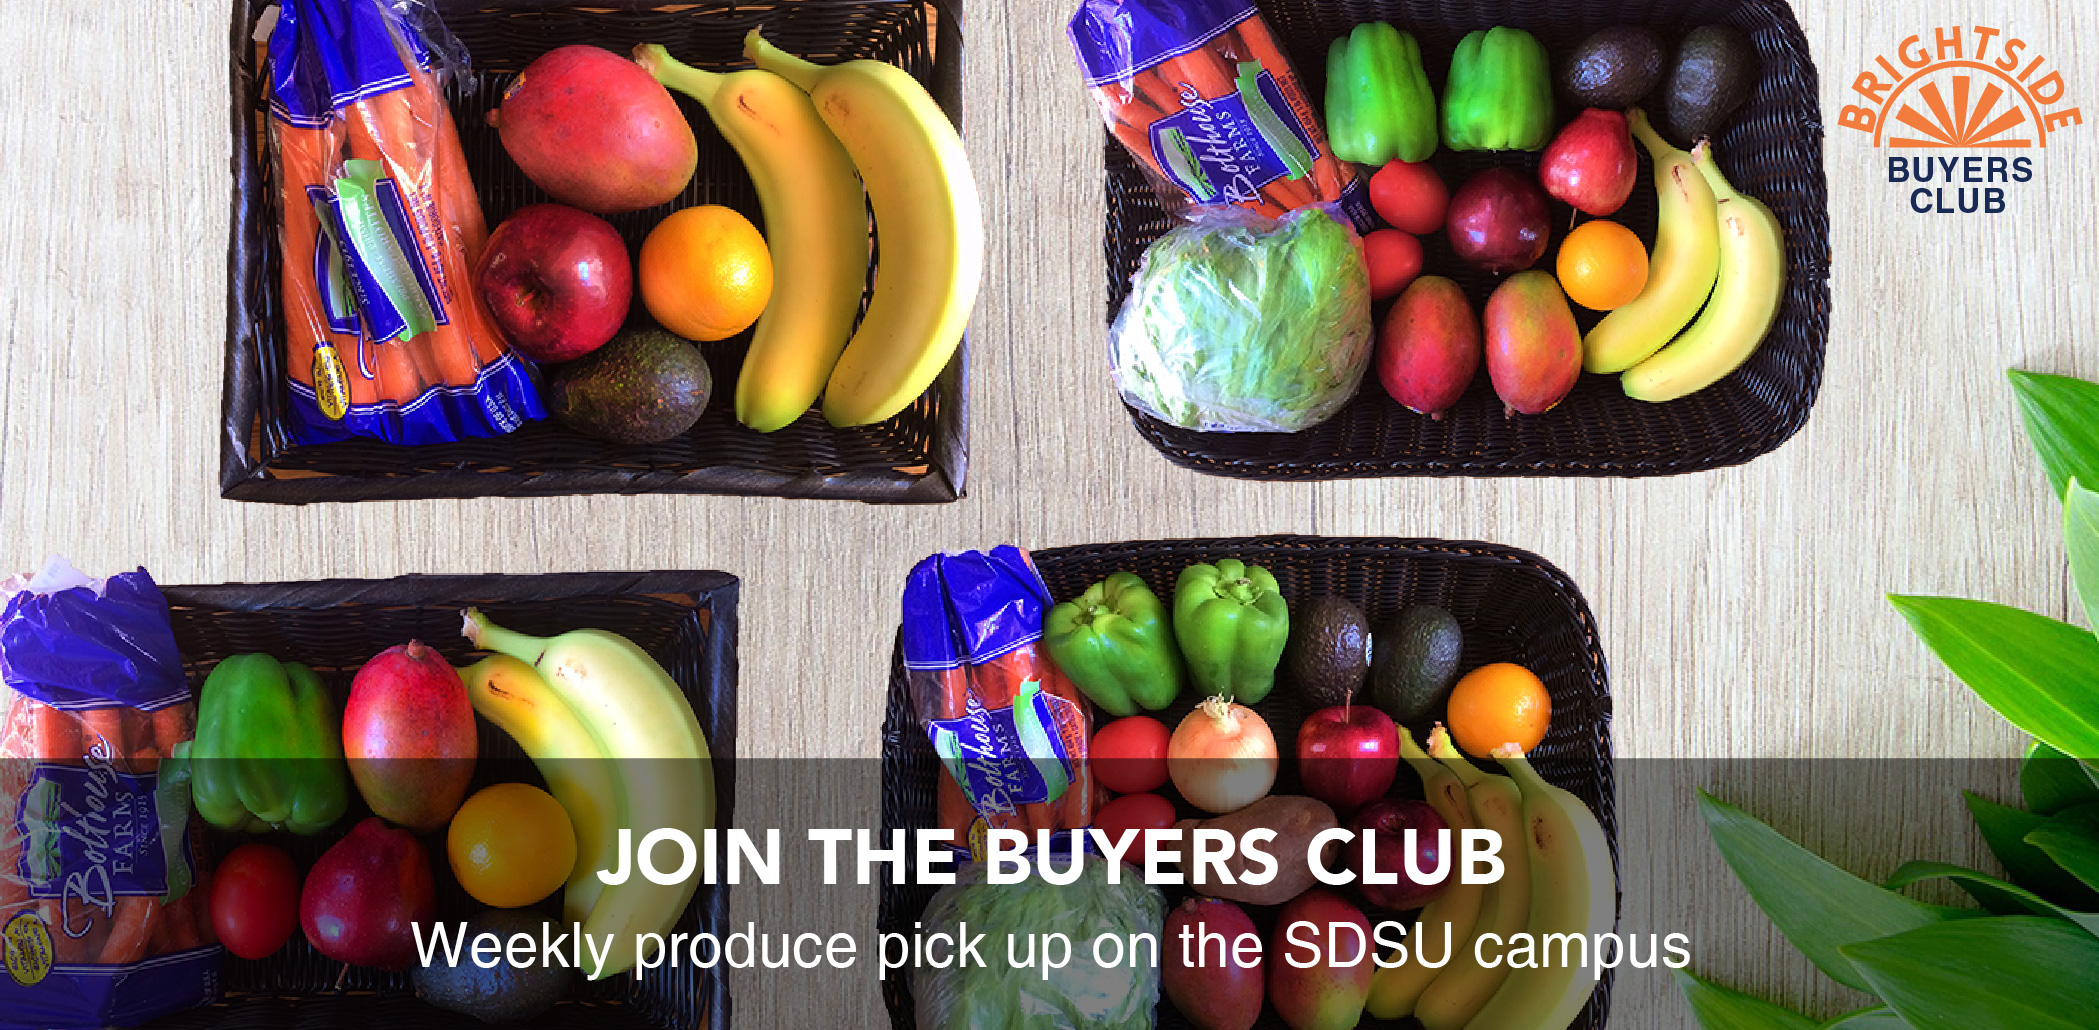 join the buyers club